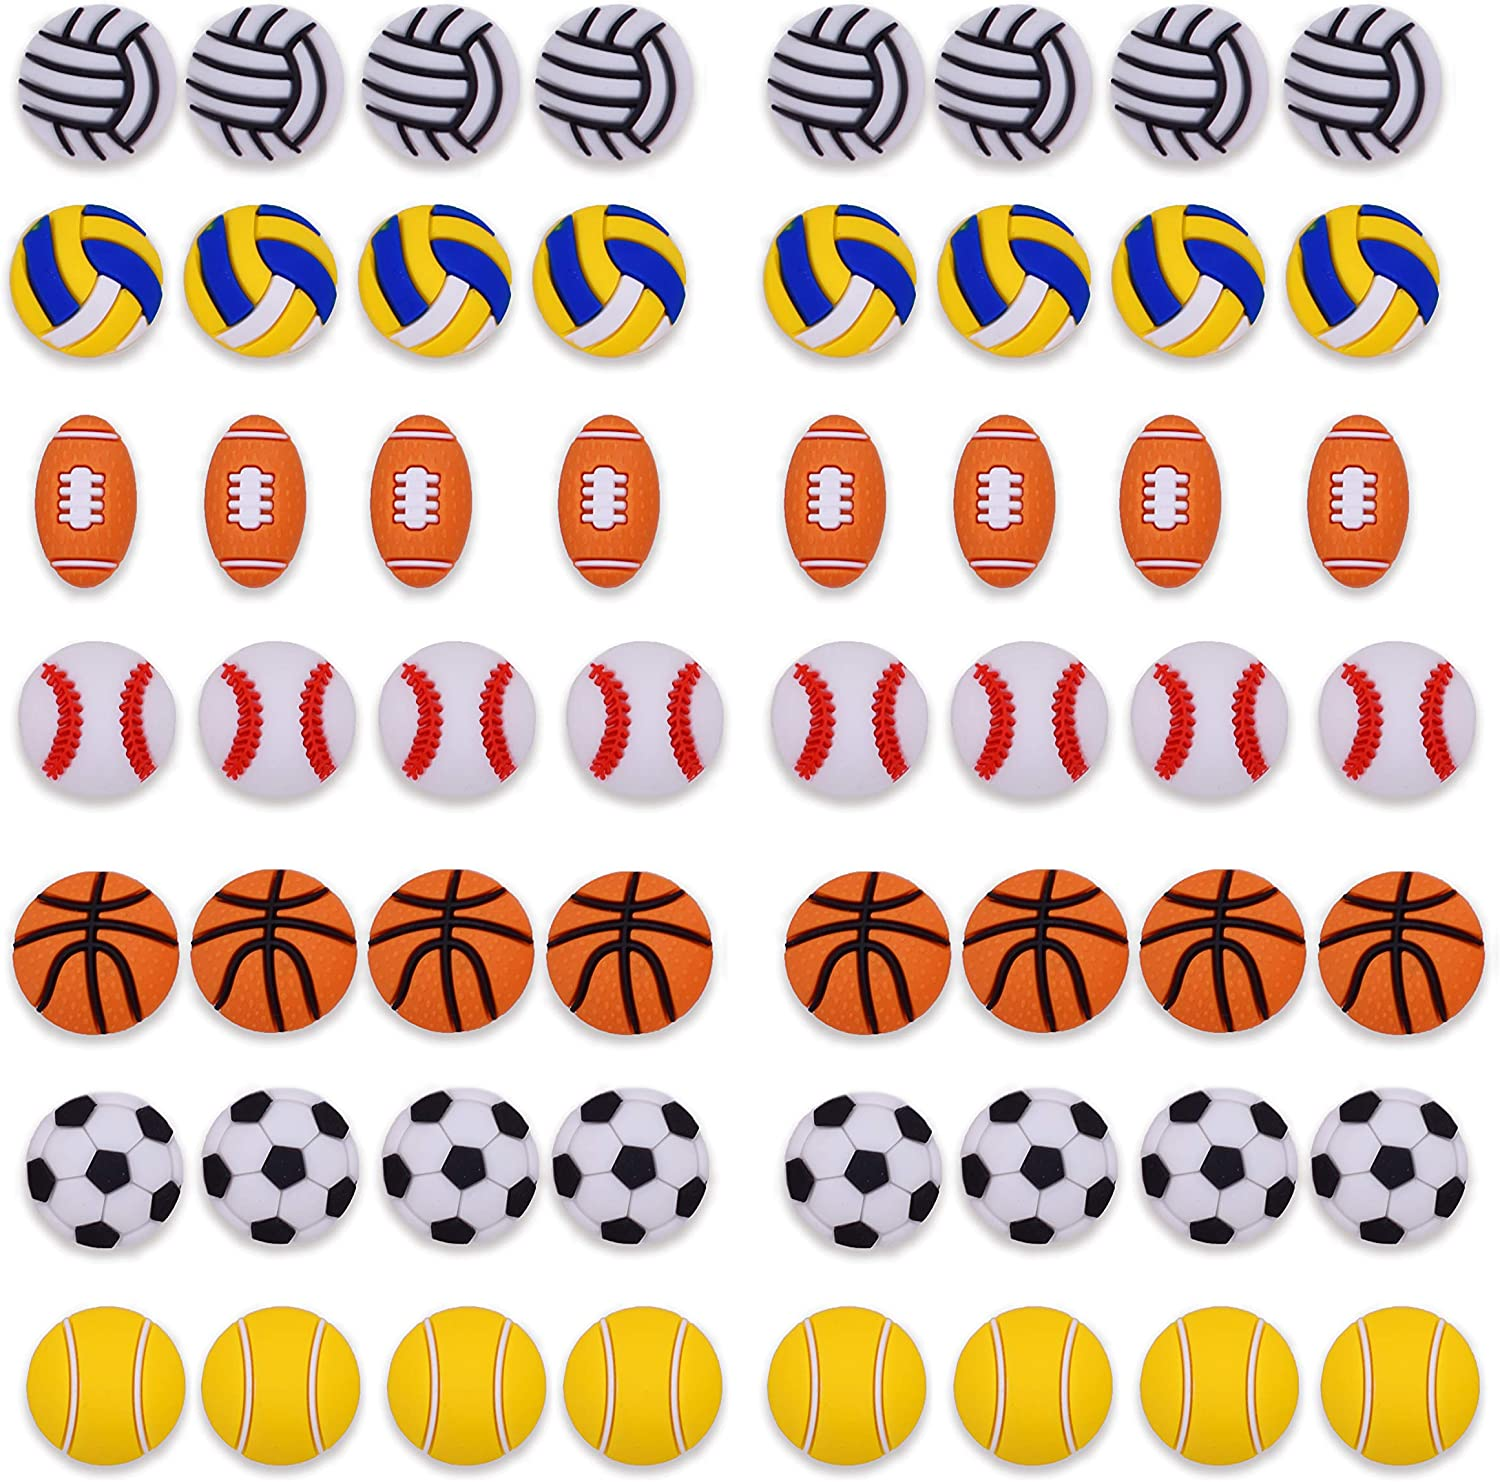 28,56pcs 3D Sports Soccer Softball Tennis Shoe Charms Decorations for Croc Clog Shoes Teens Girls Boys Gifts